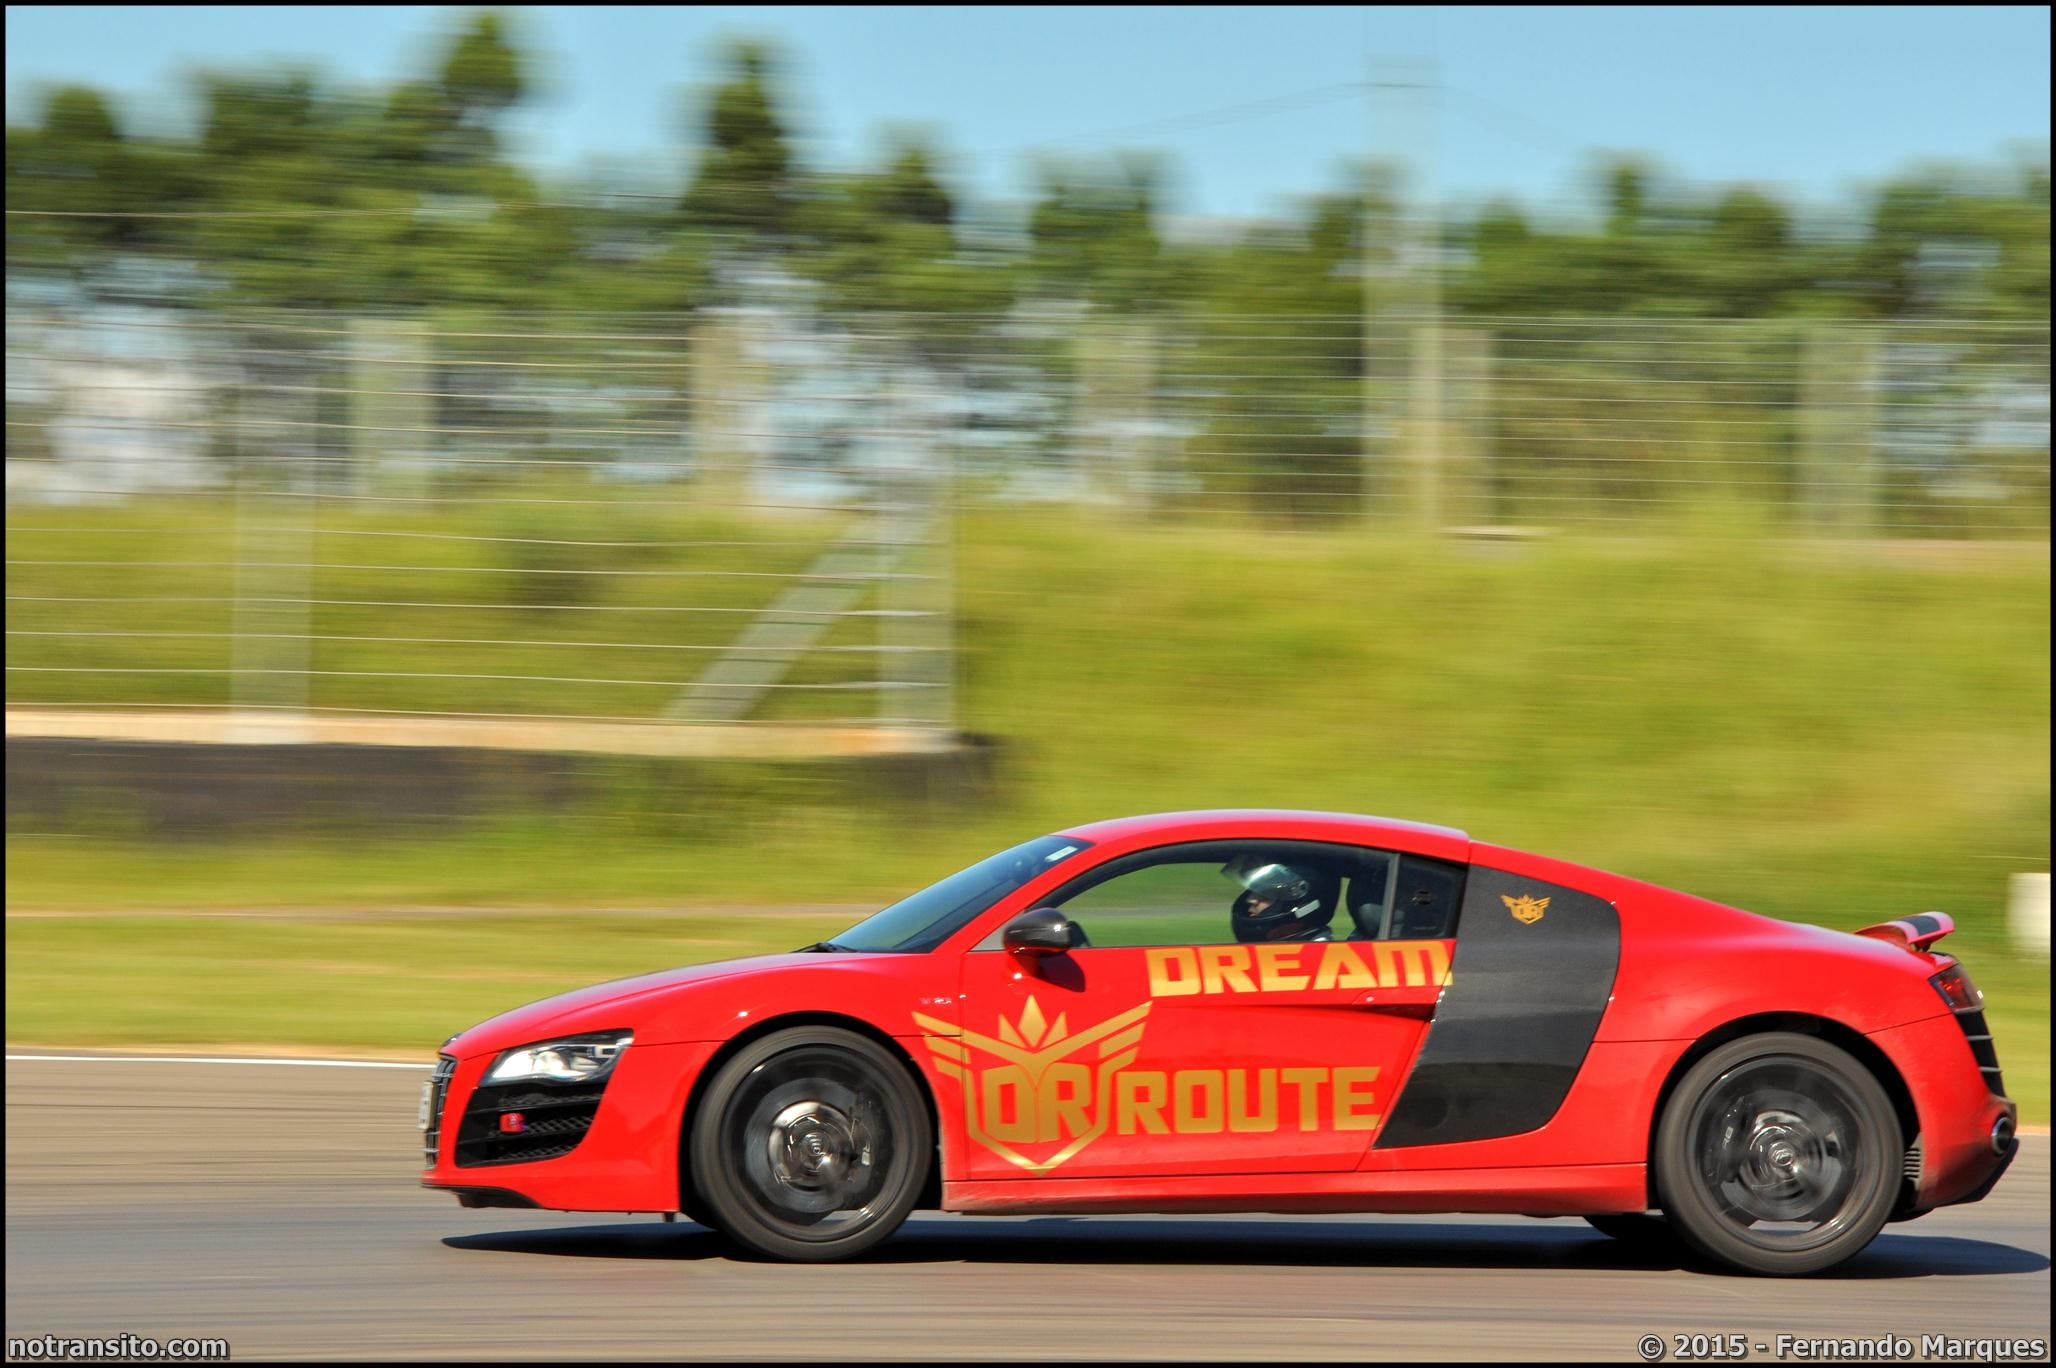 Dream Route, Audi R8 V10